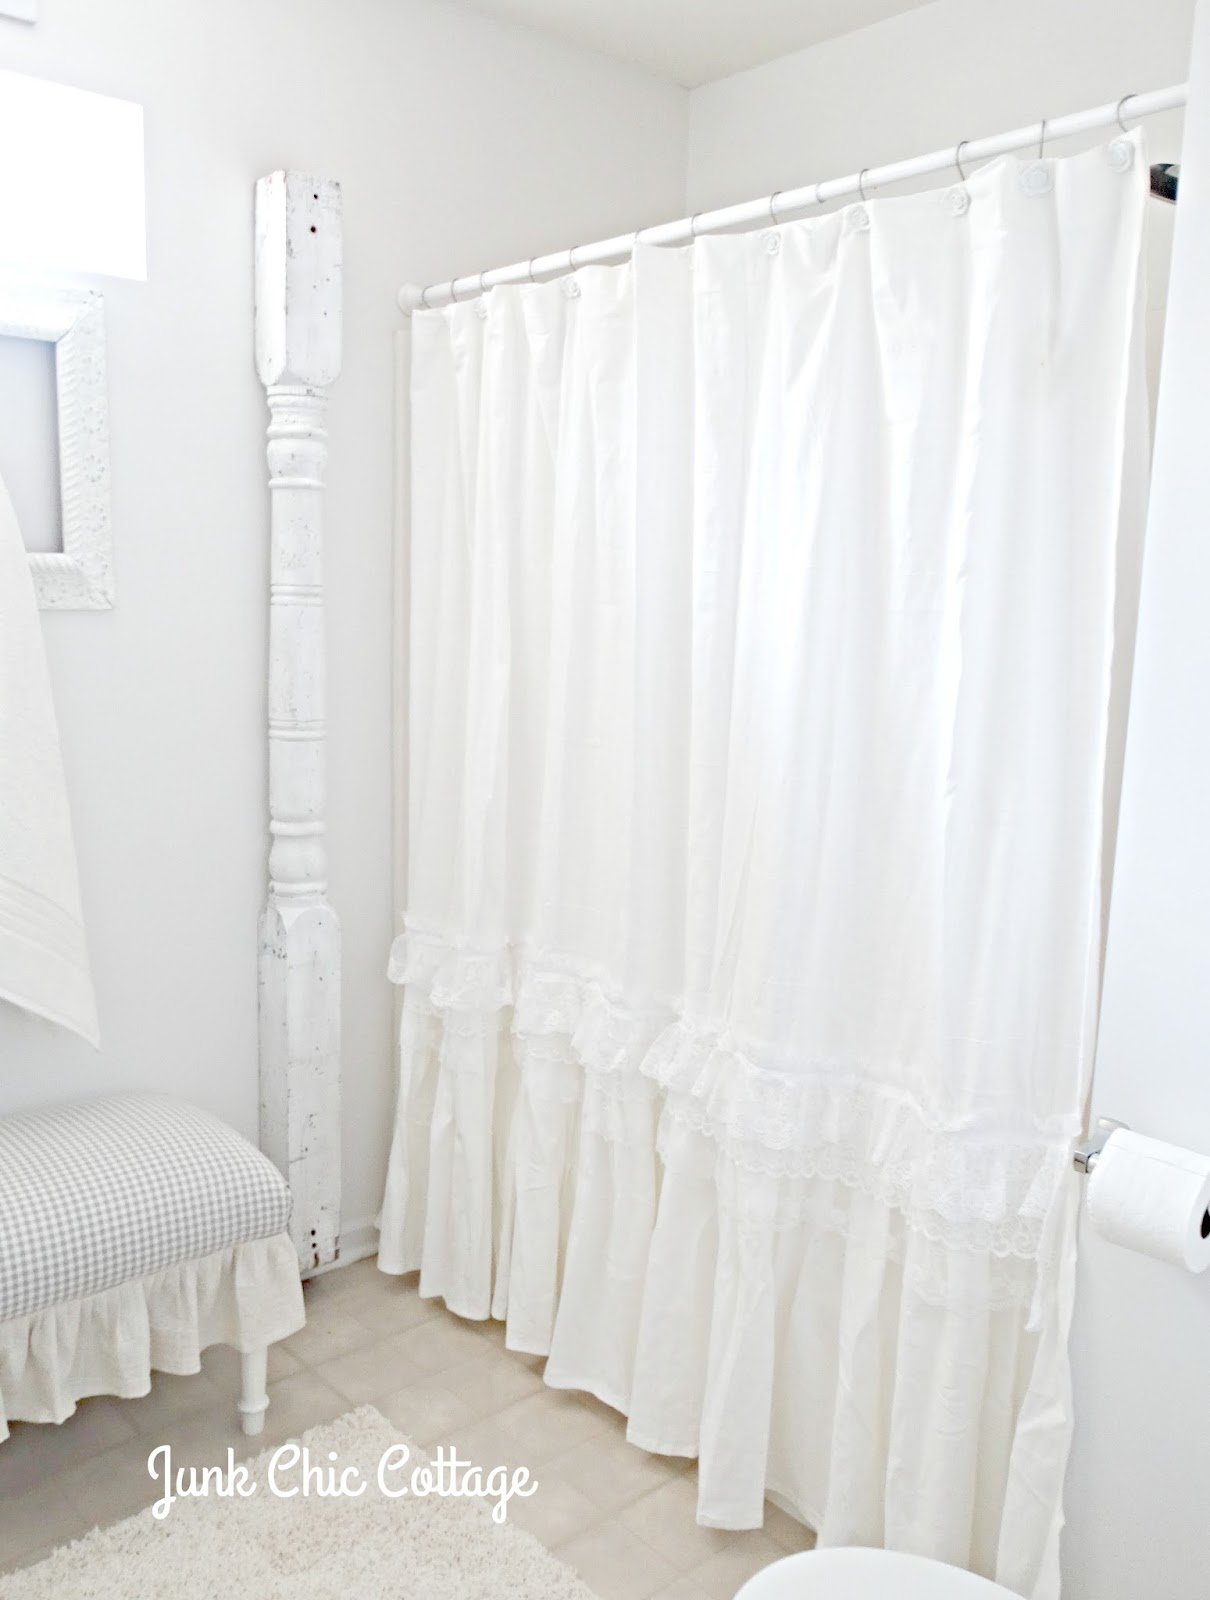 Junk Chic Cottage Ruffles Repurposed Shower Curtains Shout Out And Kitchen News